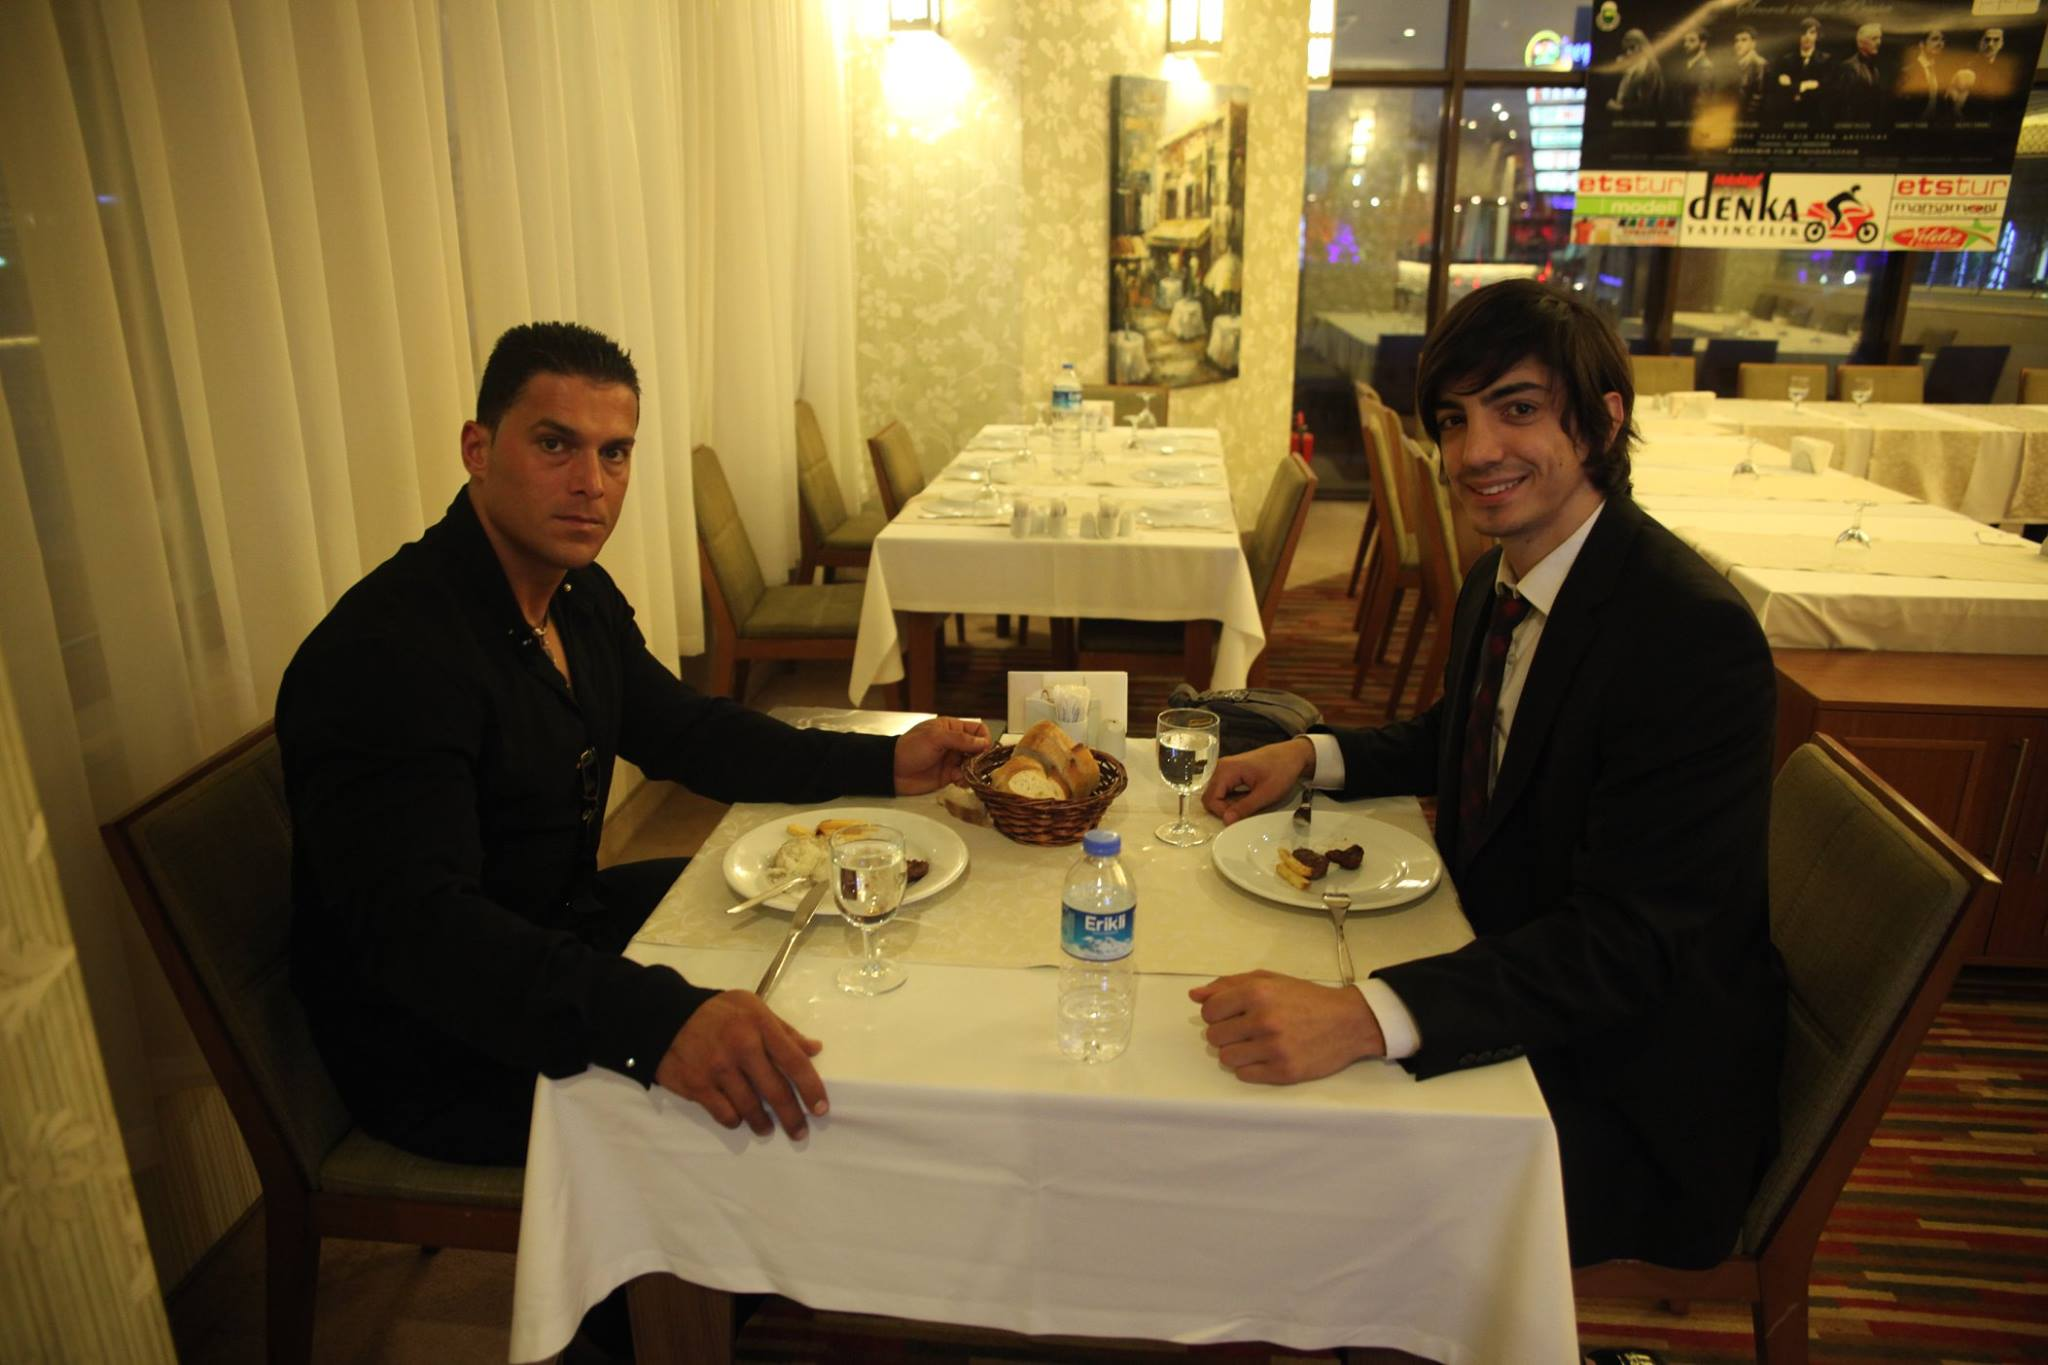 With Silvio at lunch in Turkey